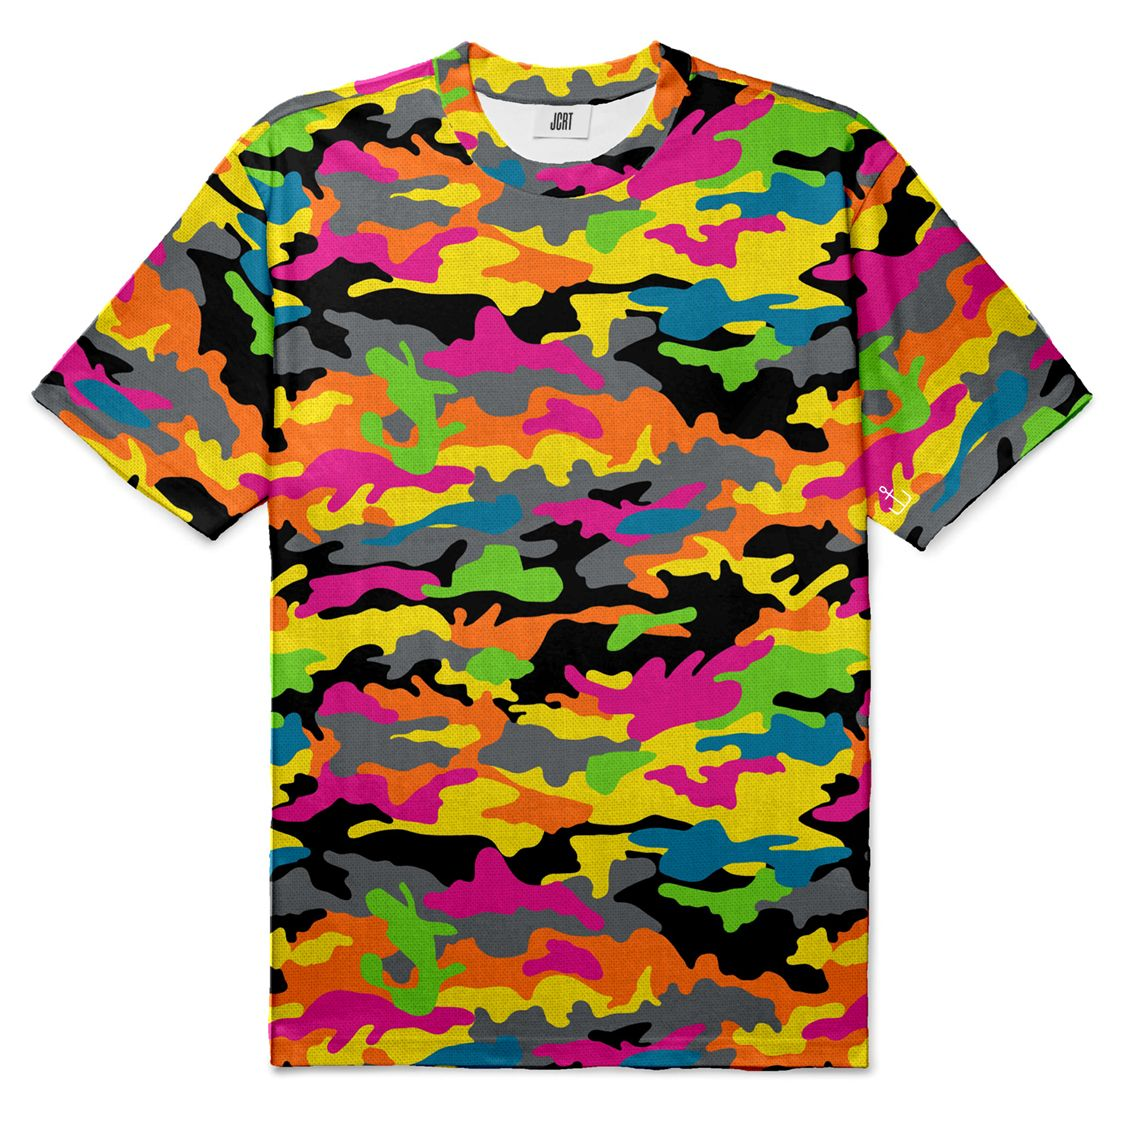 The 3 Feet High and Rising Camouflage T-Shirt